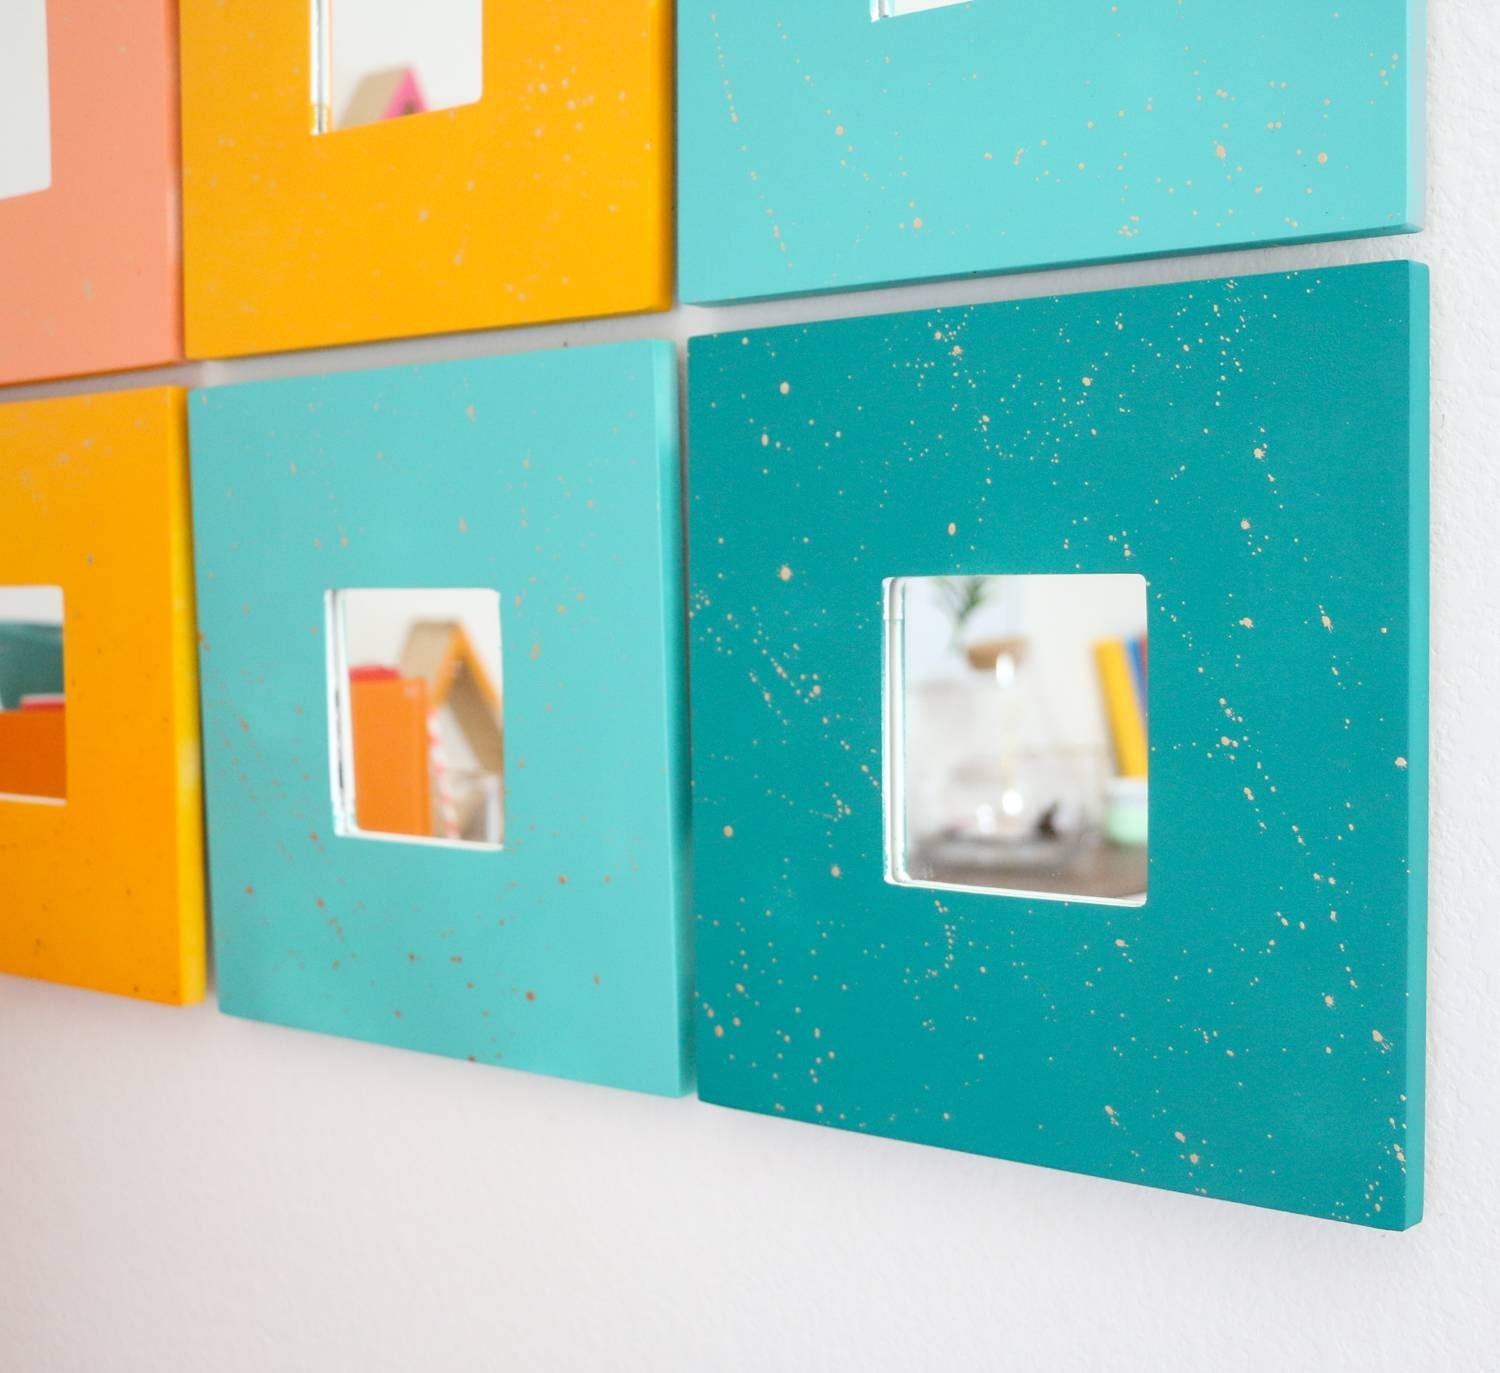 Diy Splatter Painted Mirror Wall Art – A Beautiful Mess Intended For Current Orange And Turquoise Wall Art (View 13 of 20)